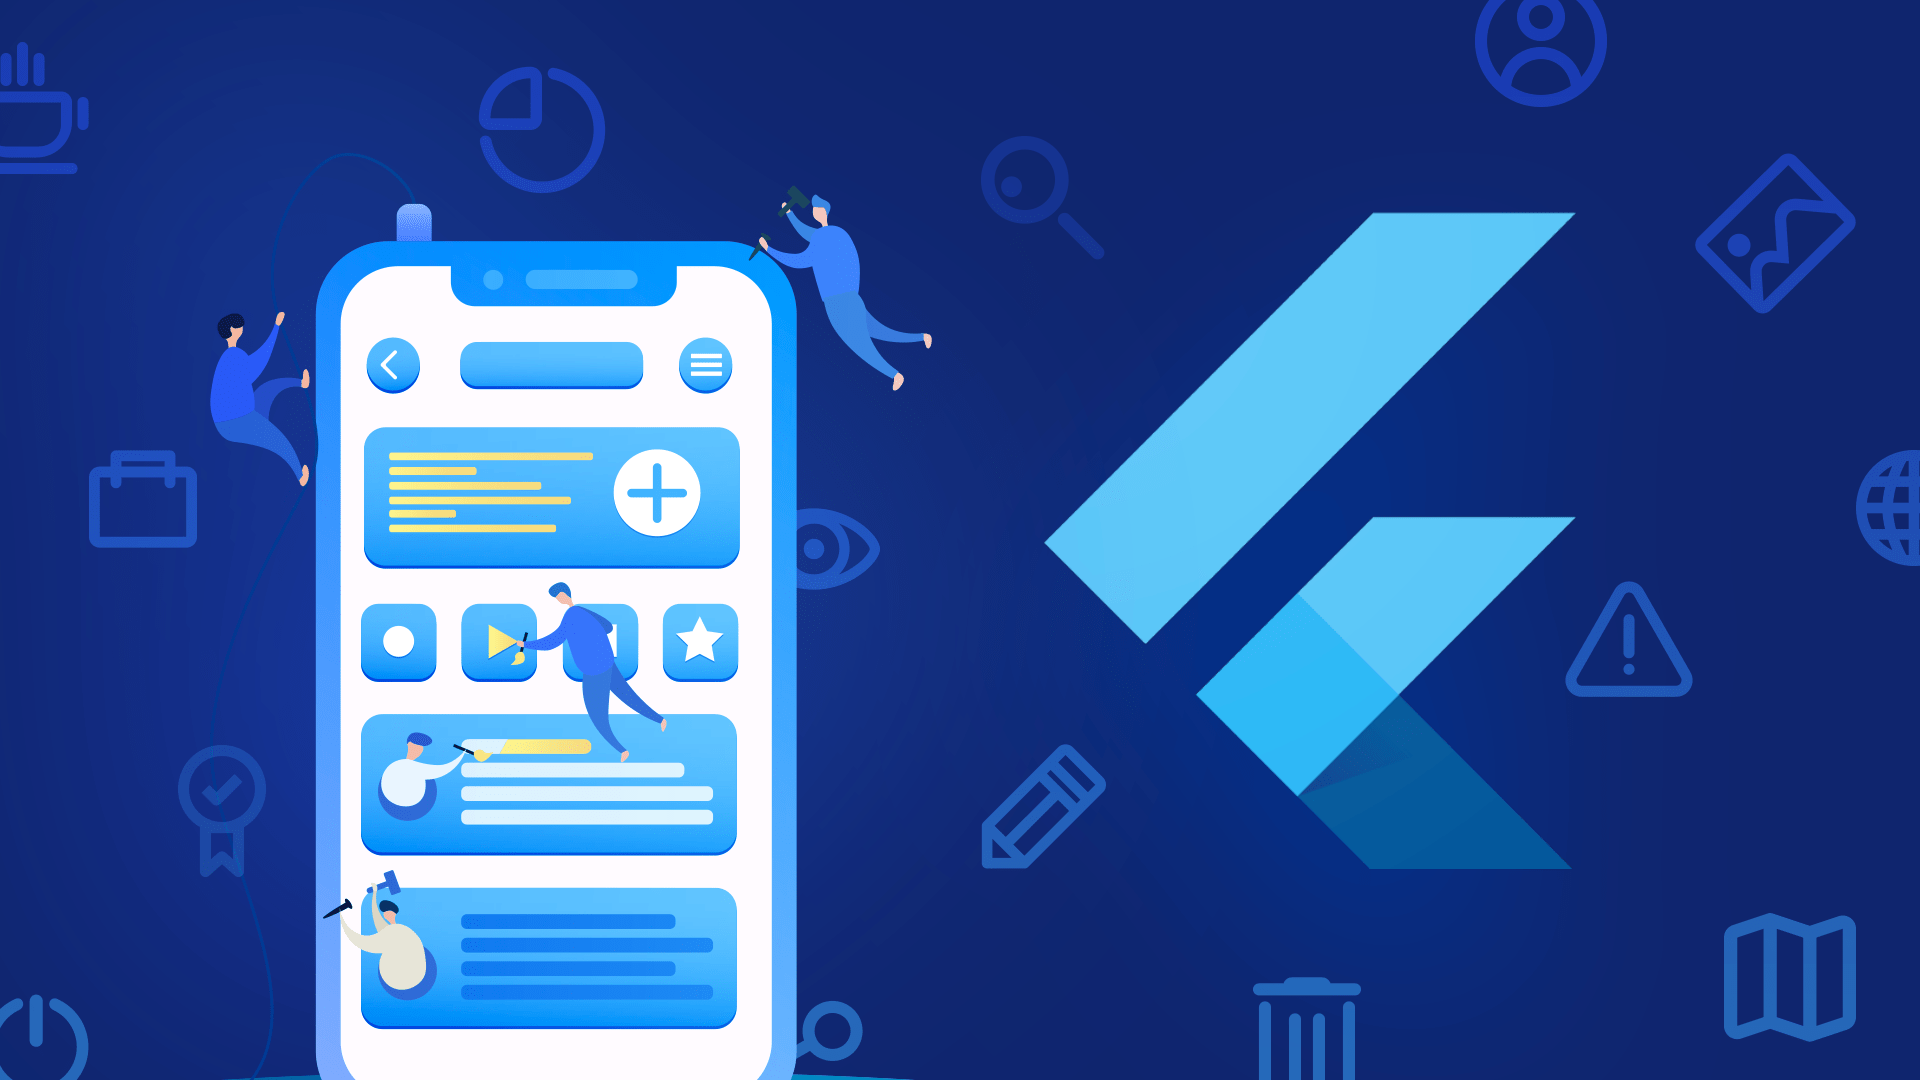 FLUTTER- Google's Latest App Development Framework Trending in 2021